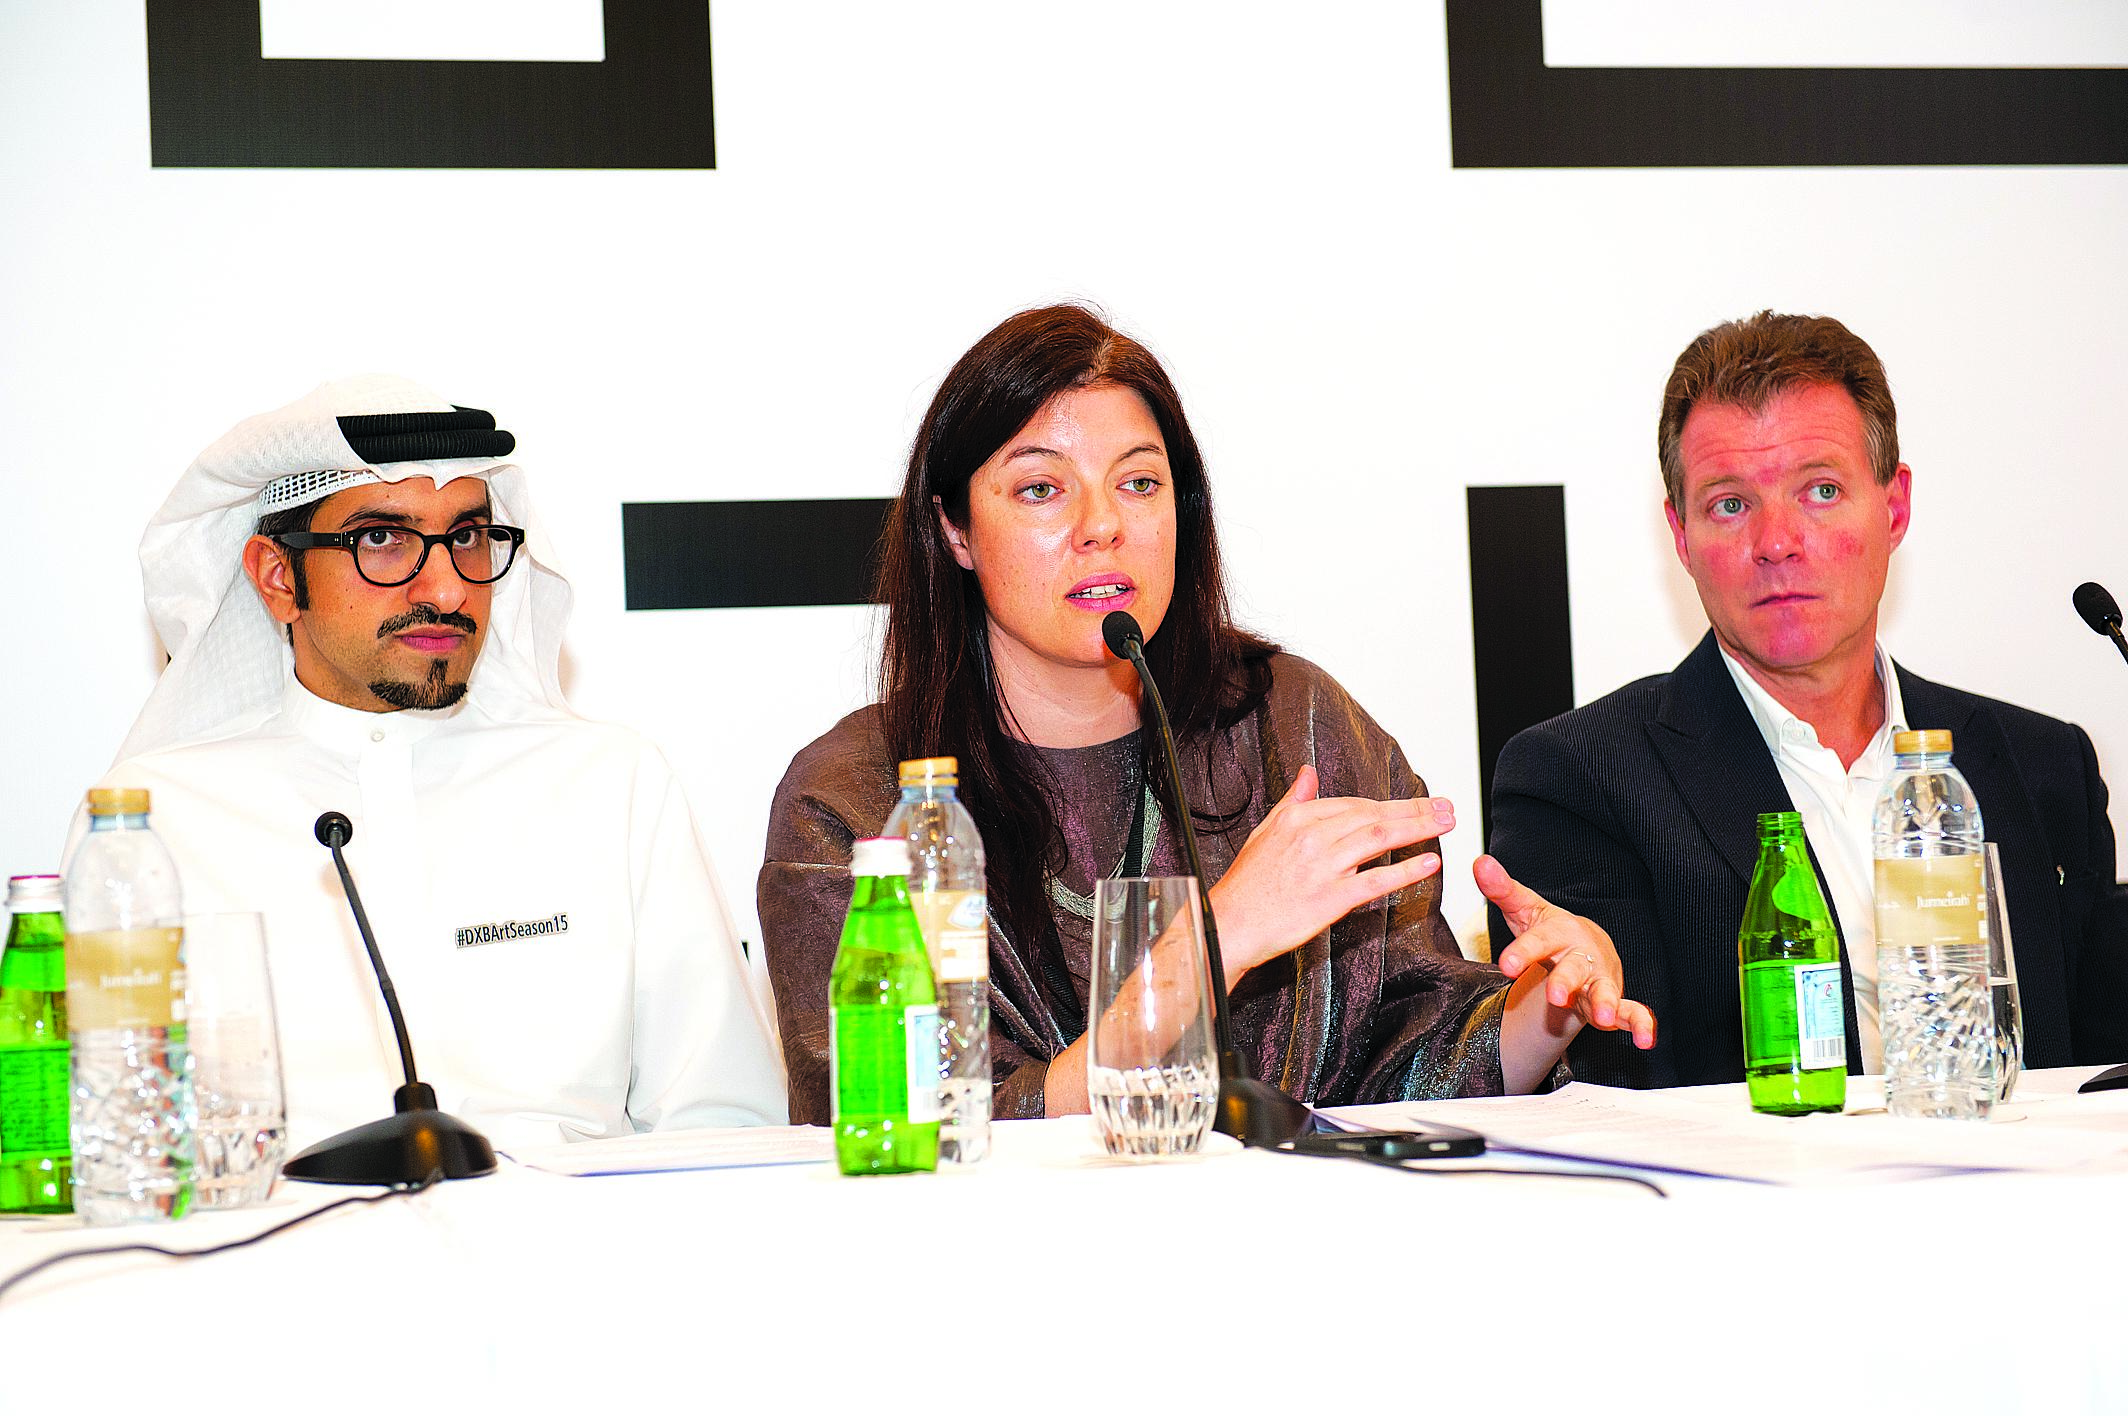 Global Art Forum moderator, Sultan Sooud Al Qassemi (left); Artistic Director at Art Dubai, Antonia Carver; and A partner at The Abraaj Group, Fred Sicre, during the preview